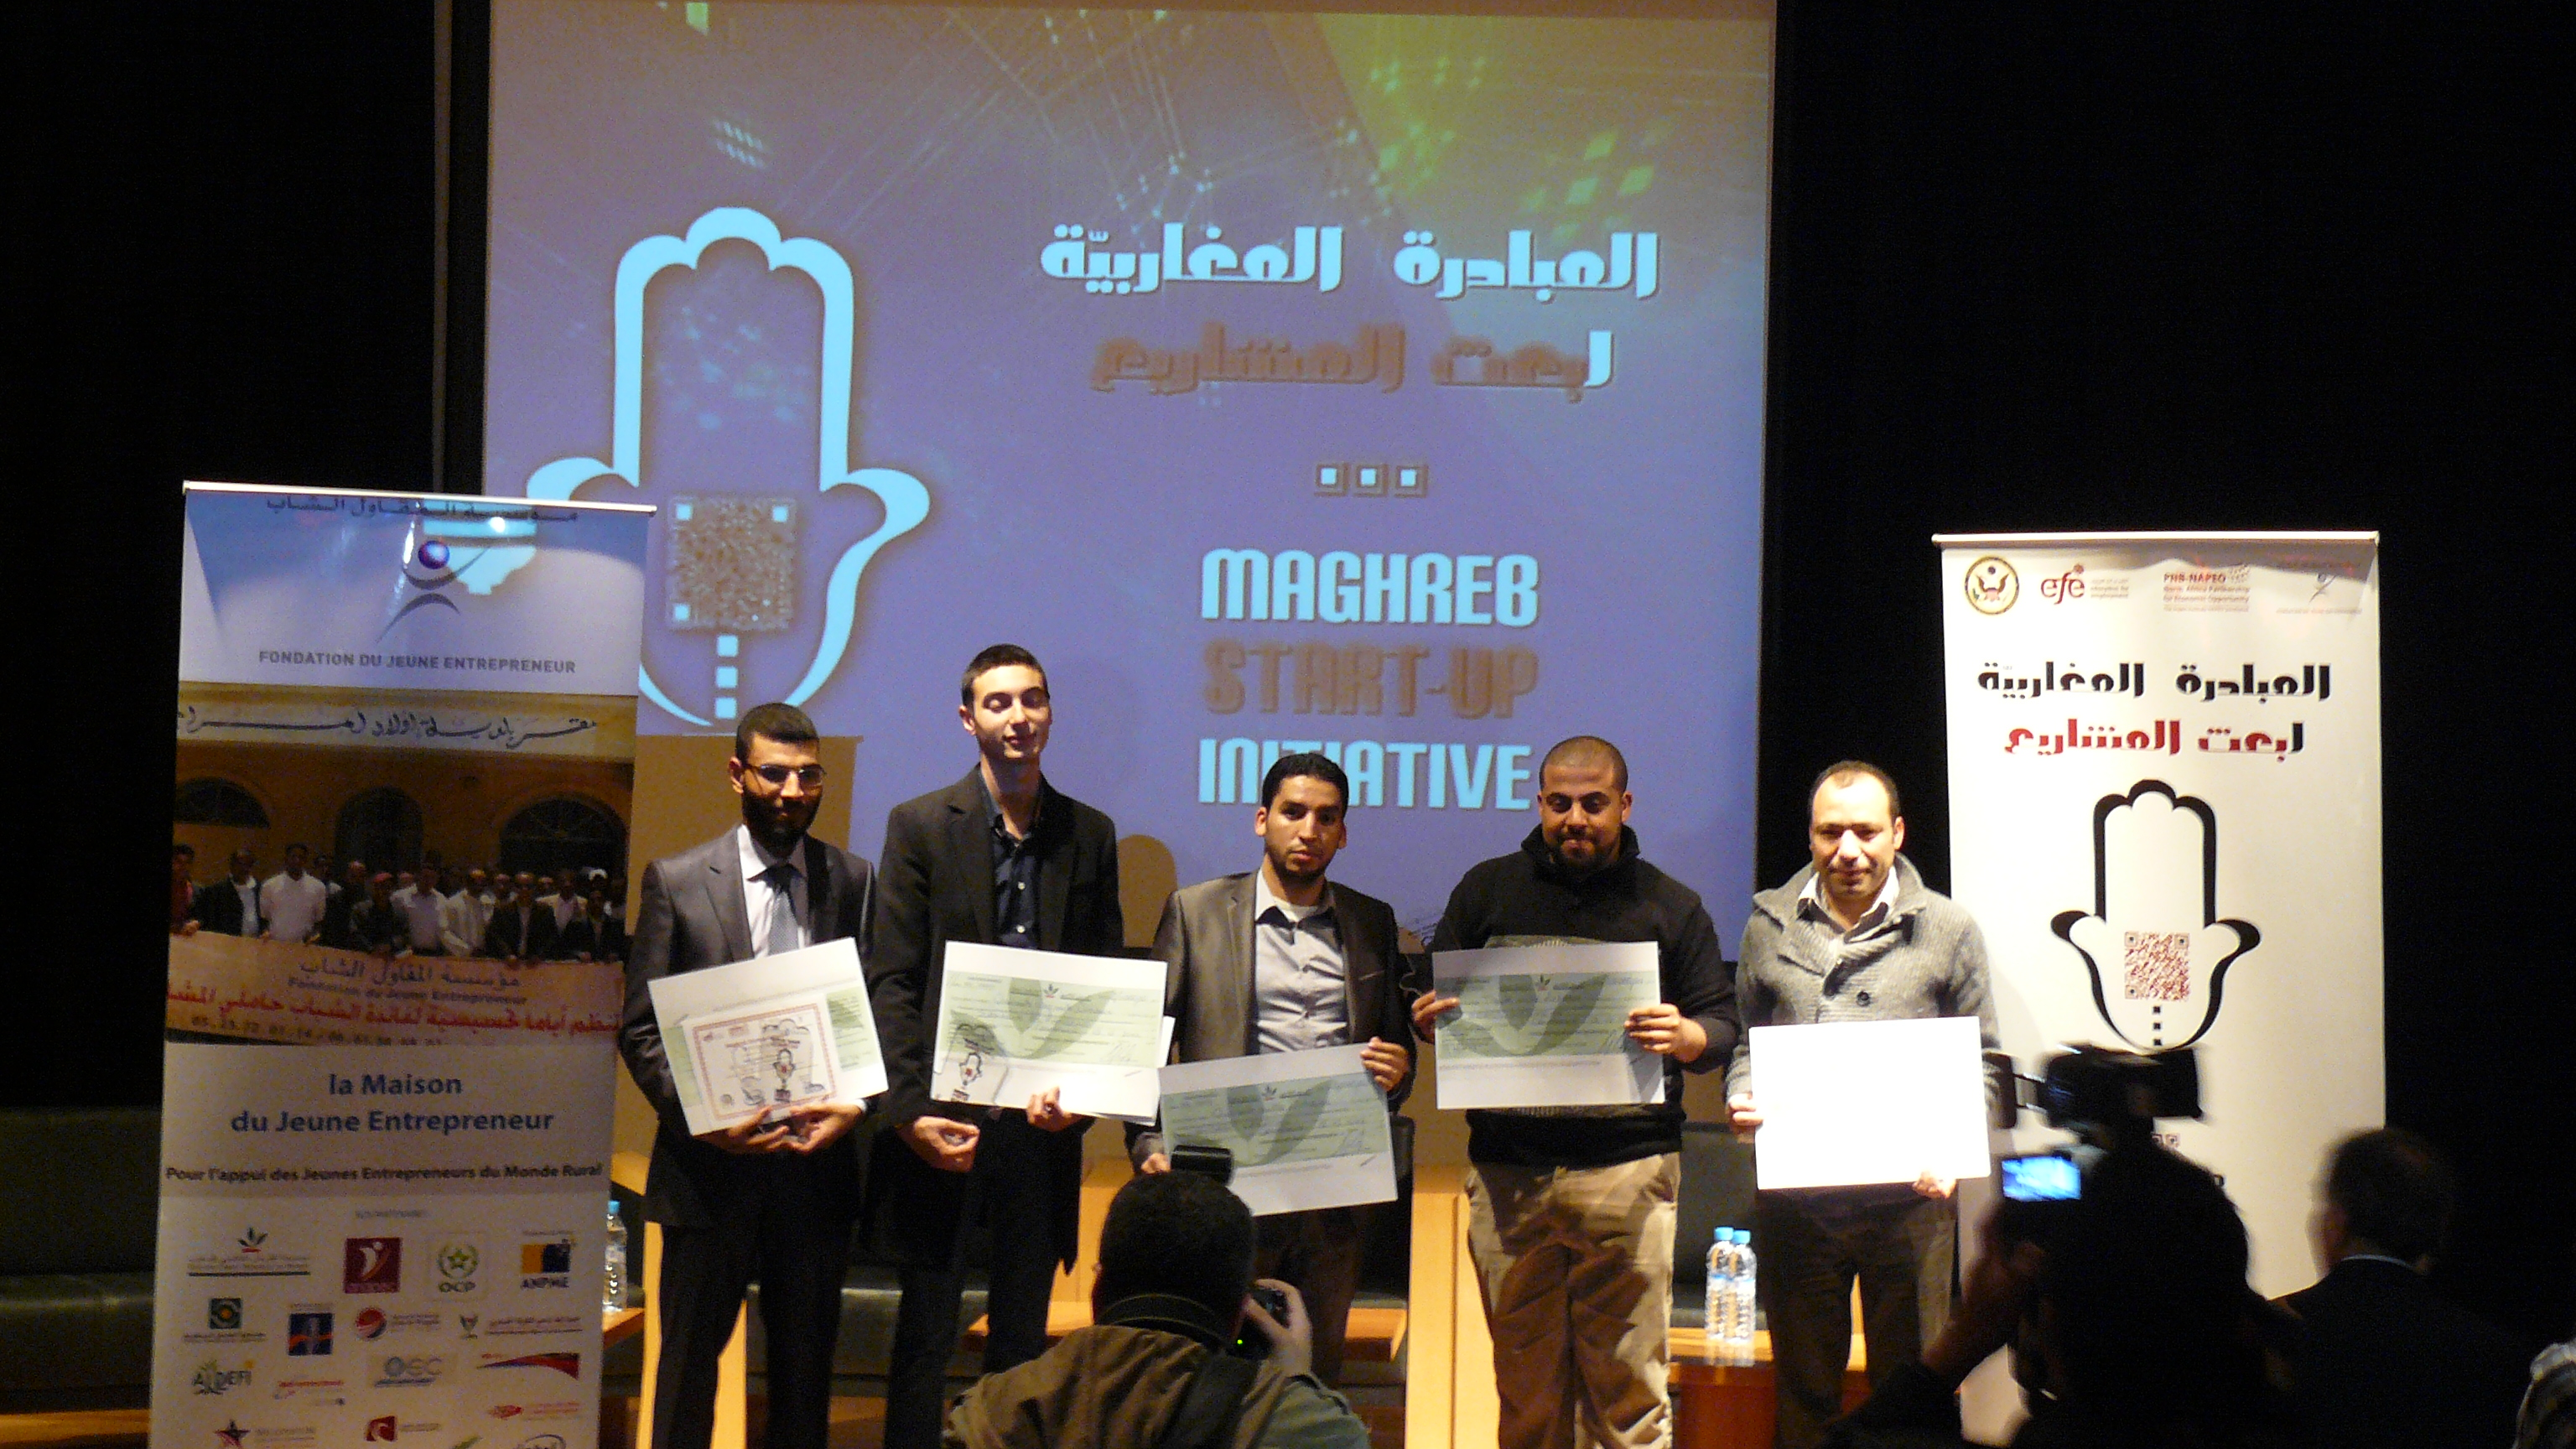 Moroccan Winners of the Maghreb Startup Initiative